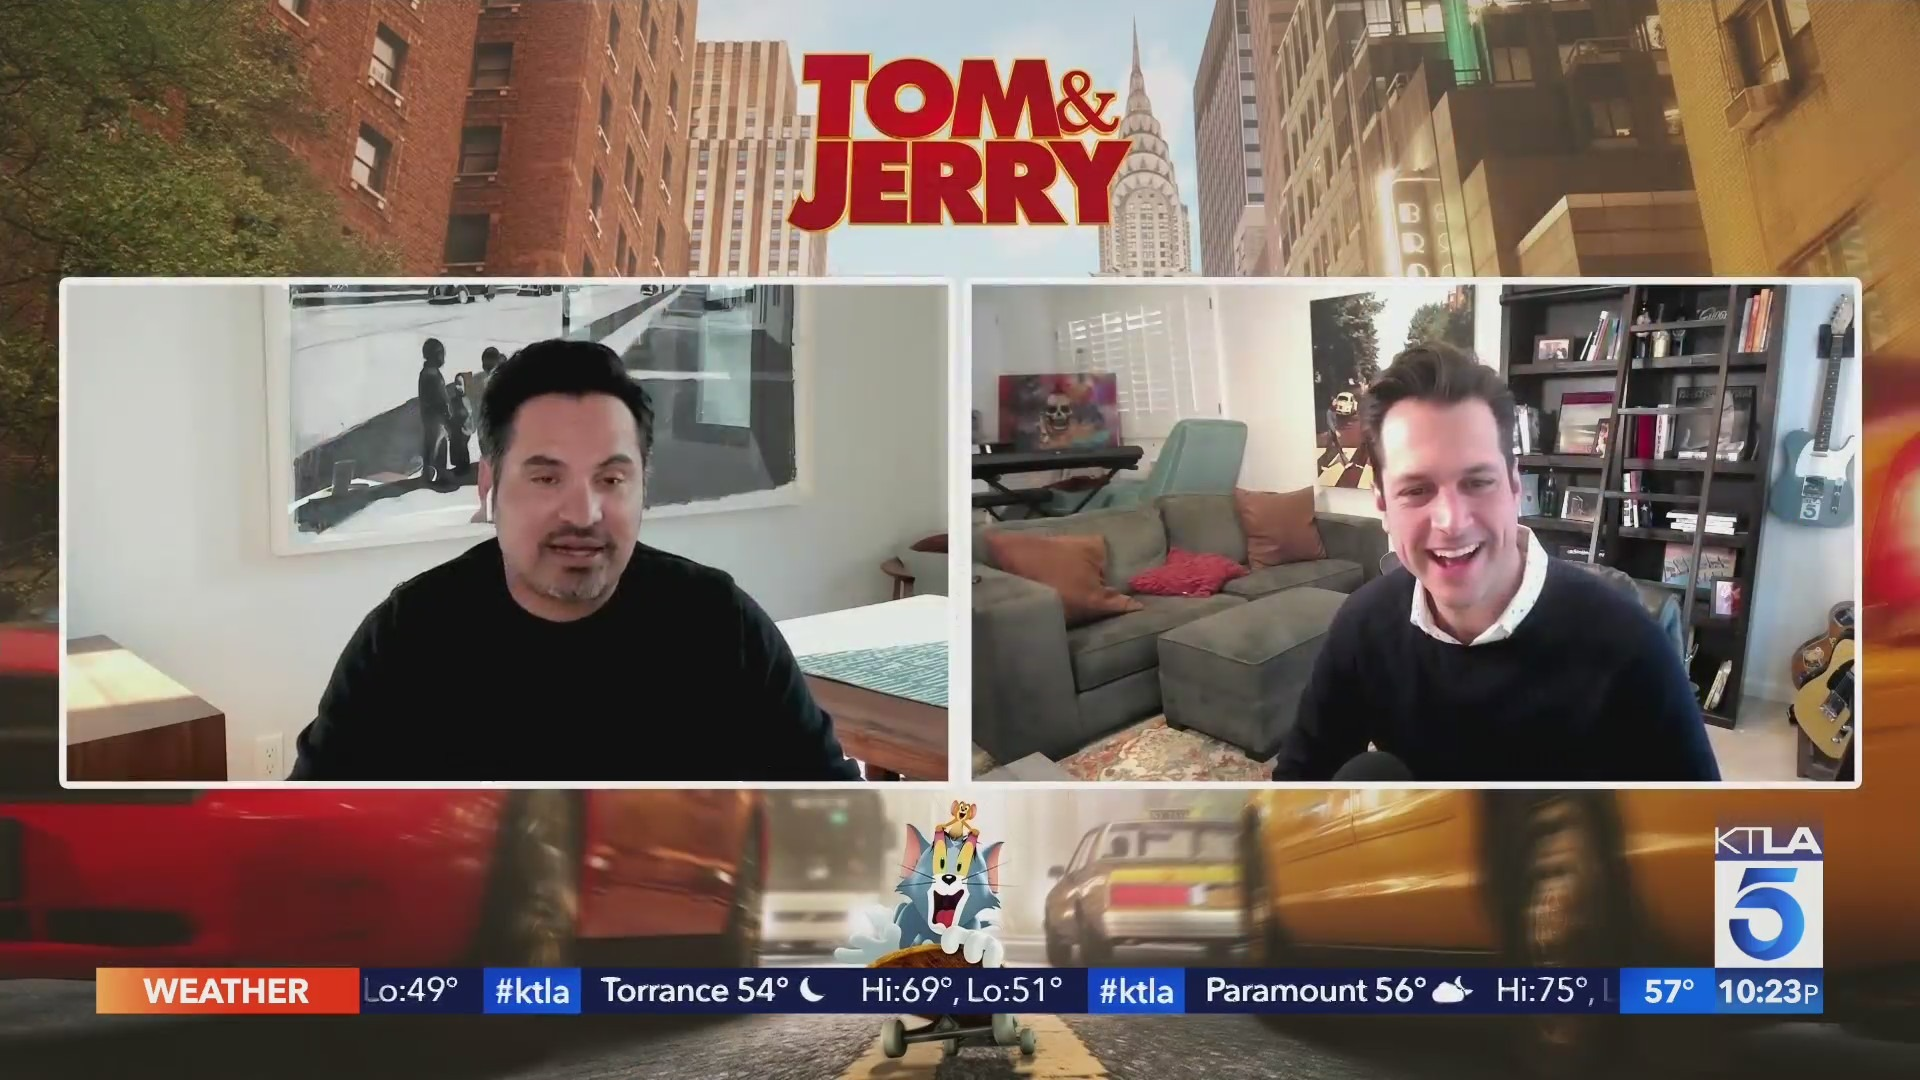 The Classic lovable cat and mouse duo 'Tom & Jerry' are back